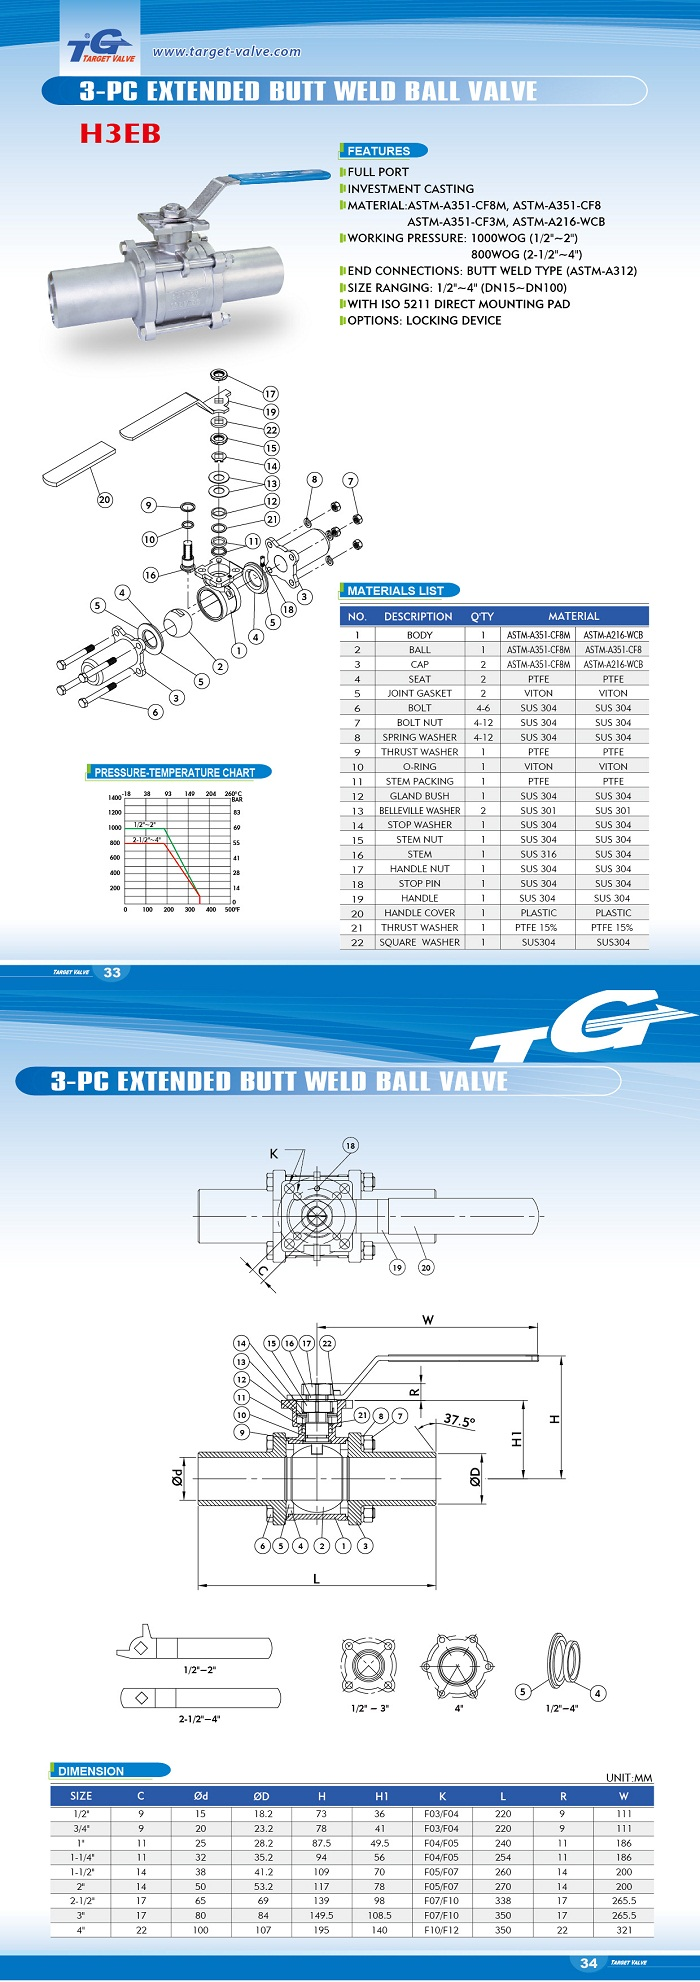 3 PC EXTENDED BUTT WELD BALL VALVE - H3EB